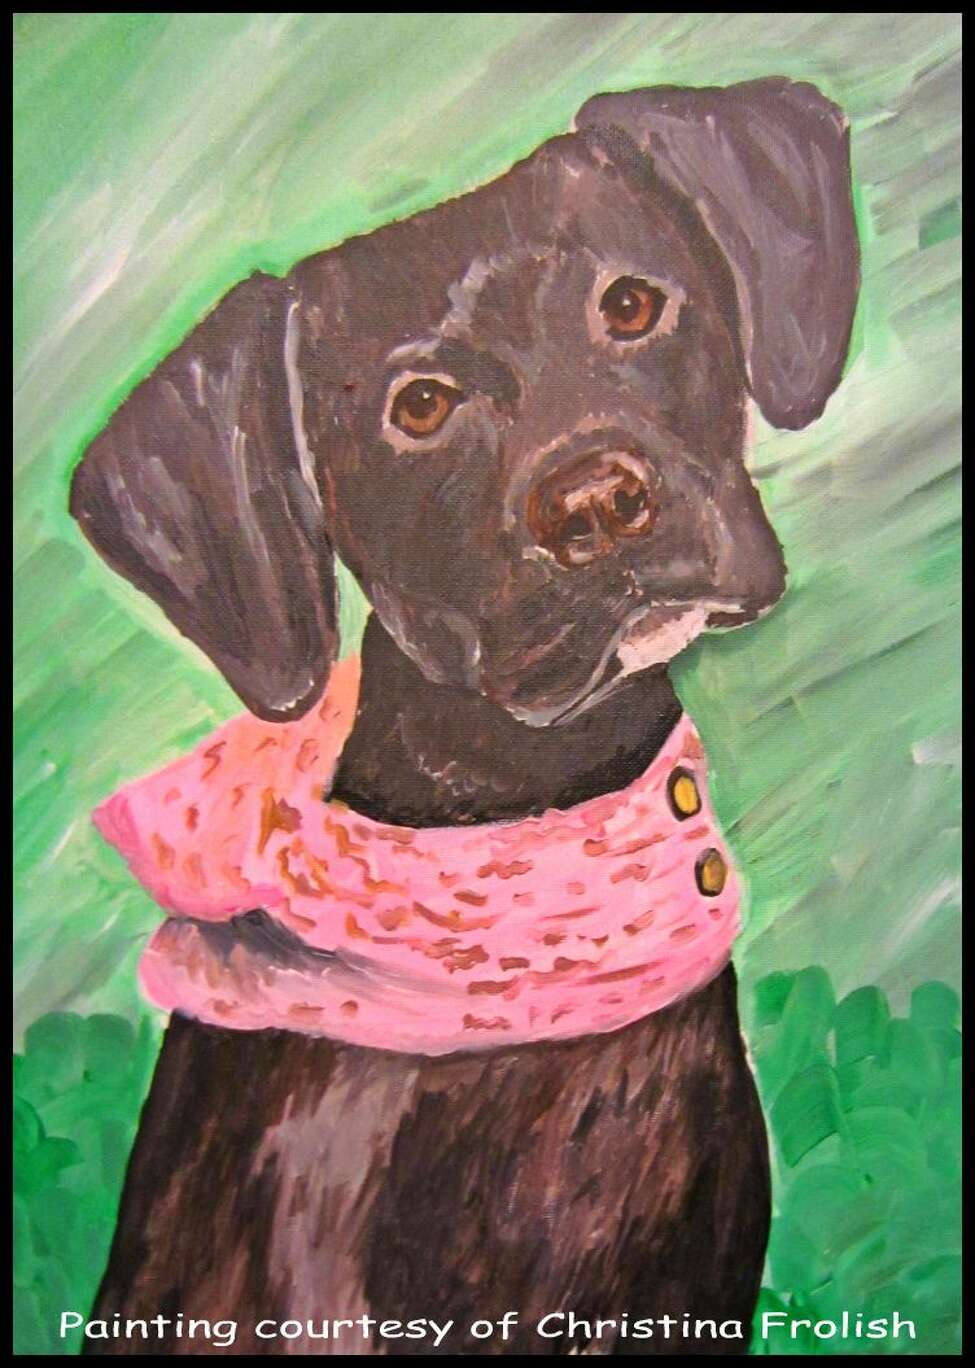 Paint Your Pet. Come paint and party at Saratoga Paint and Sip Studio. A local artist will walk you through the painting while you sip on beer or wine from our in-studio bar. Send in photos of your pet in jpeg format to info@saratogapaintandsip.com.Reserve your seat by visiting the website or calling the studio.When: Friday, August 26, 7 - 9 PM. Where: Saratoga Paint and Sip Studio, Route 9, Newton Plaza, Latham.